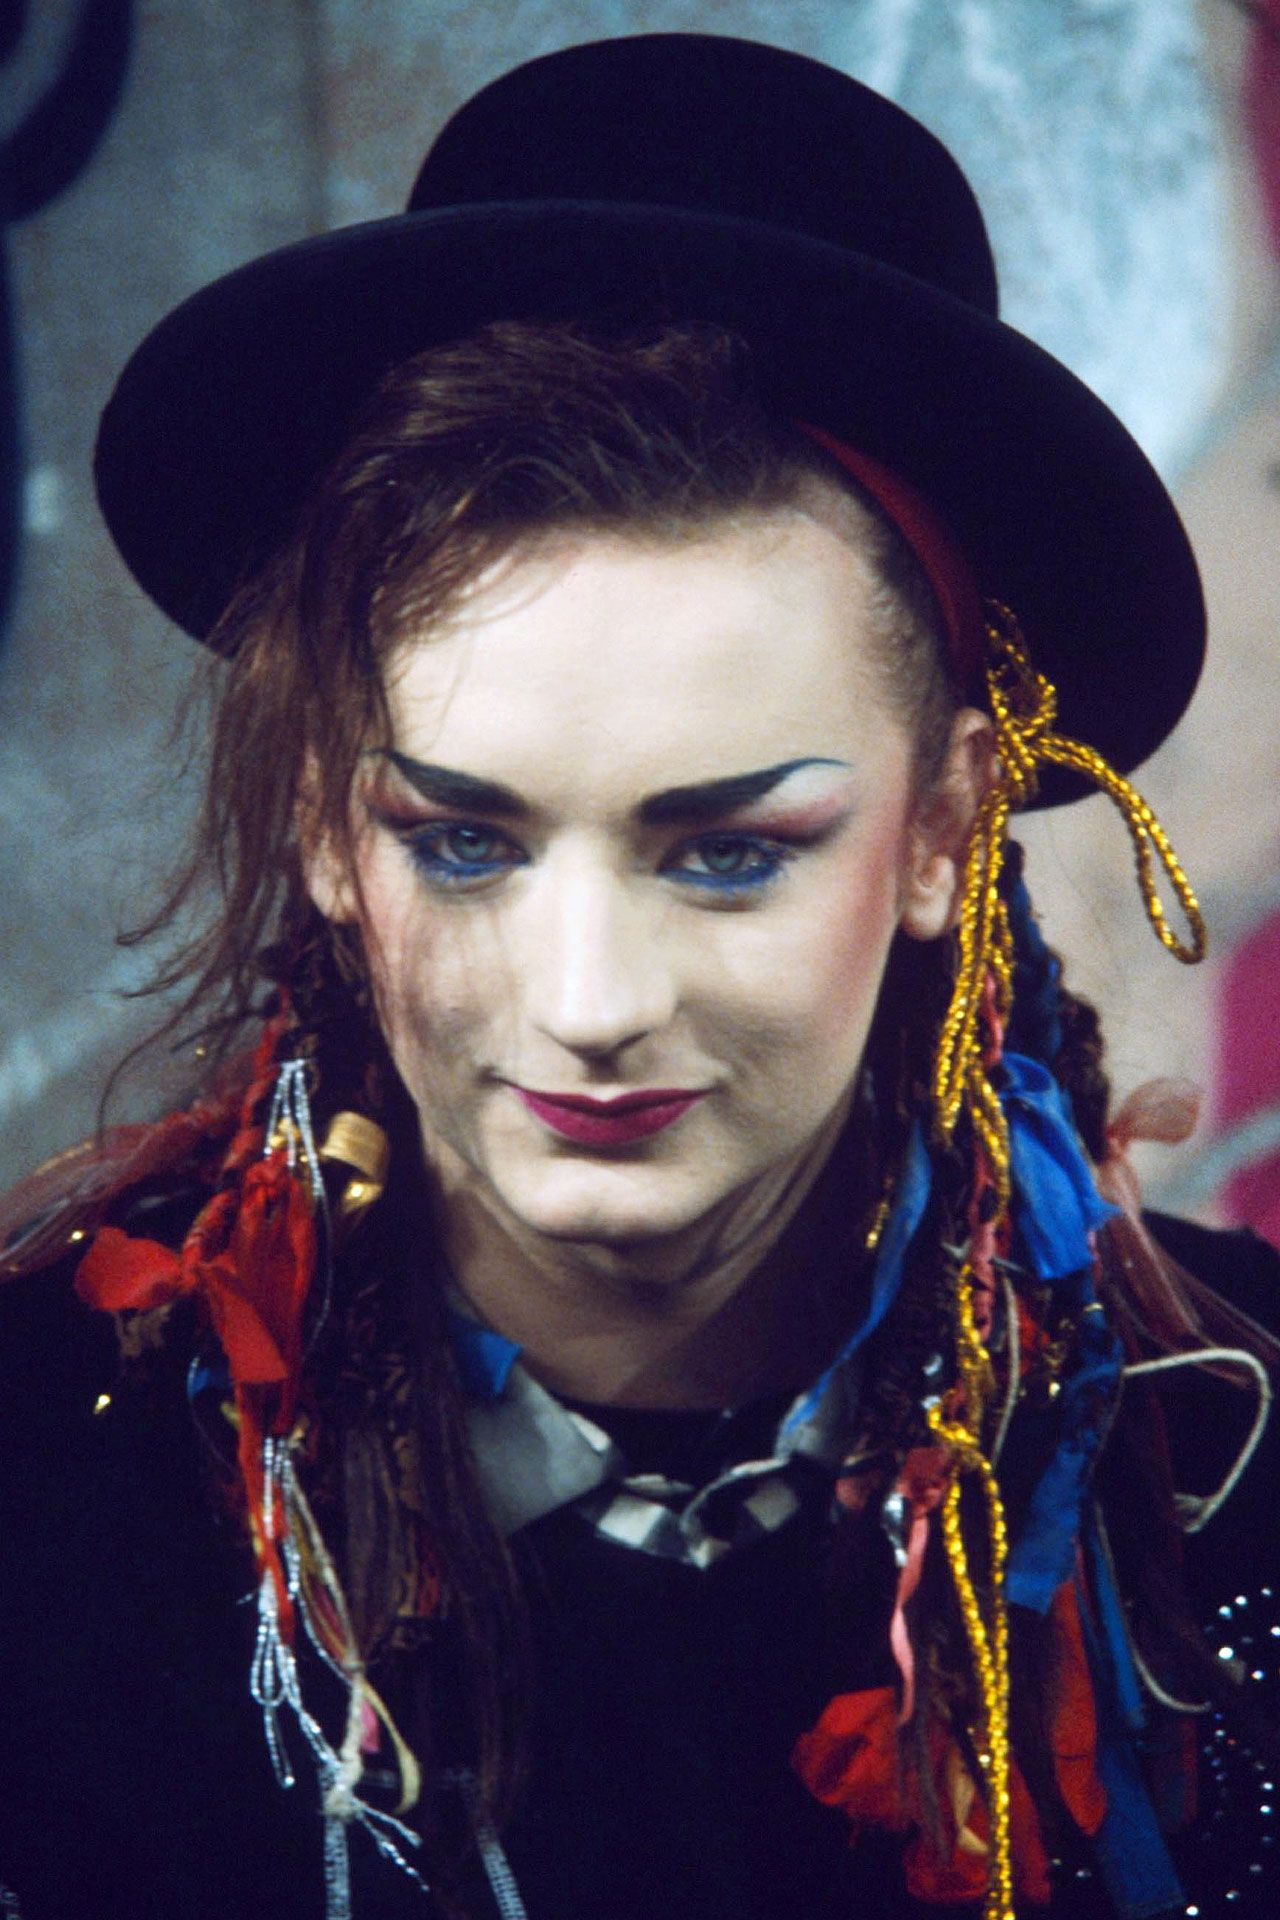 boy george runboy george 2016, boy george do you really, boy george 80s, boy george hare krishna, boy george run, boy george 2017, boy george karma chameleon, boy george crying game перевод, boy george dior, boy george instagram, boy george king of everything, boy george слушать, boy george twitter, boy george 2015, boy george everything i own, boy george young, boy george generation of love, boy george sold, boy george wiki, boy george 2014